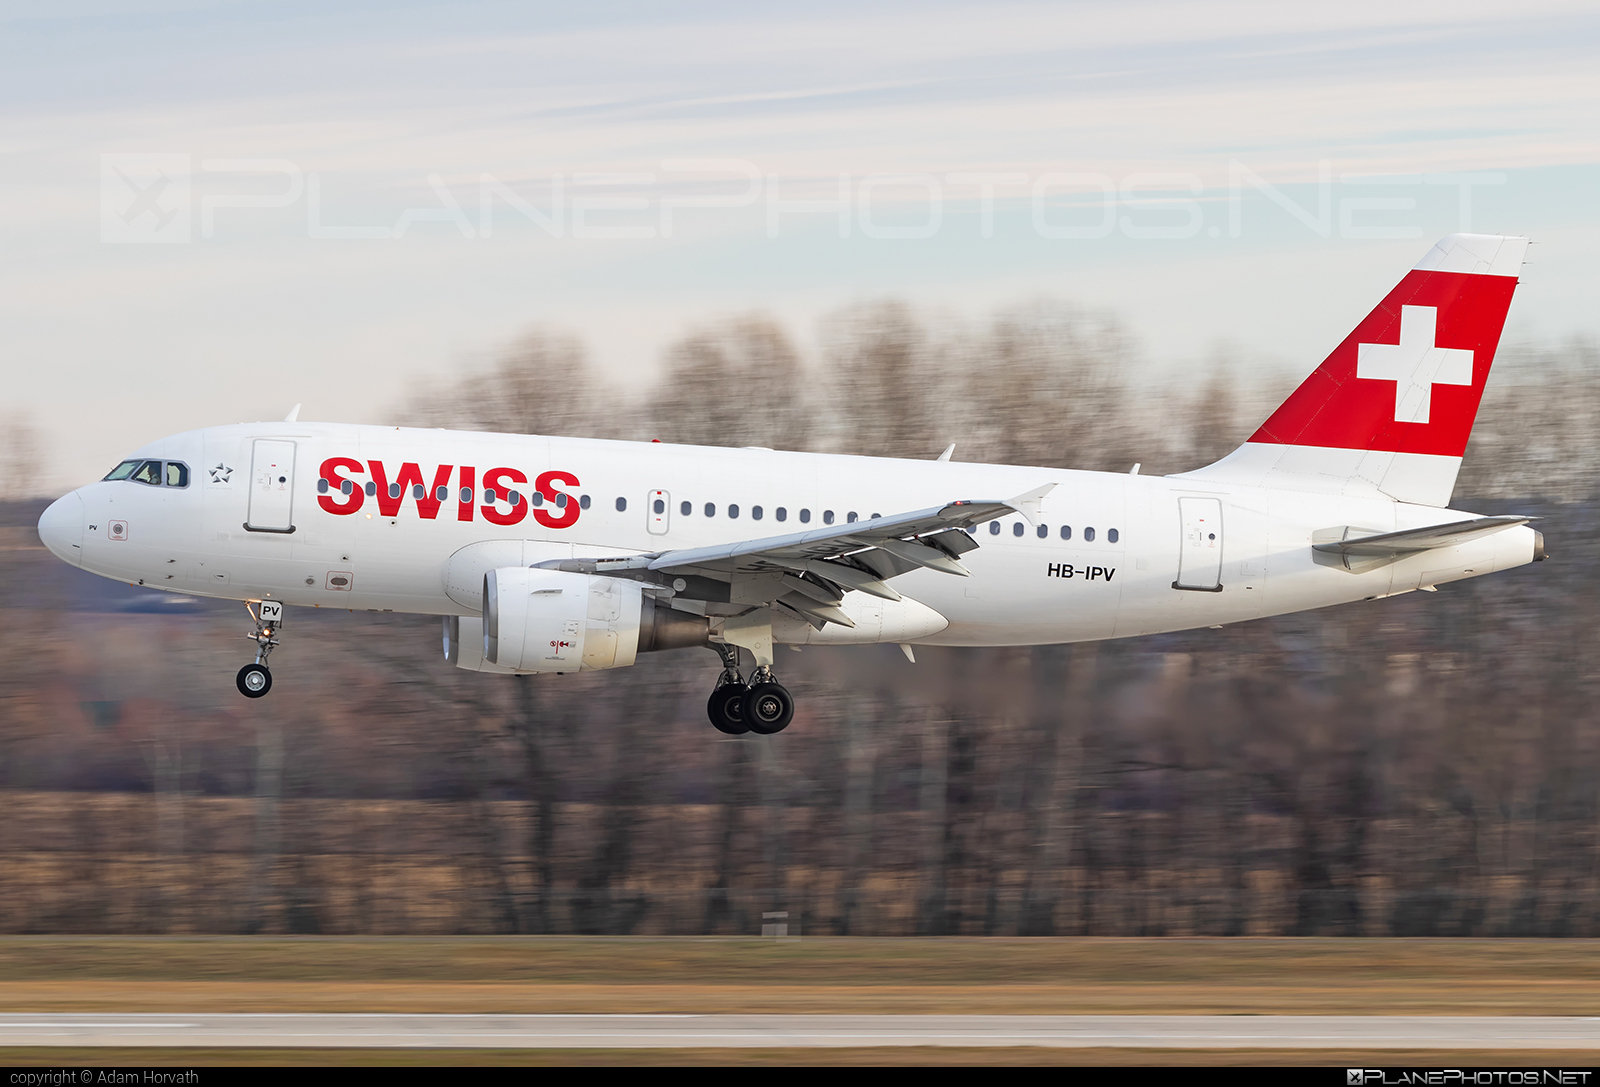 Airbus A319-112 - HB-IPV operated by Swiss International Air Lines #a319 #a320family #airbus #airbus319 #swiss #swissairlines